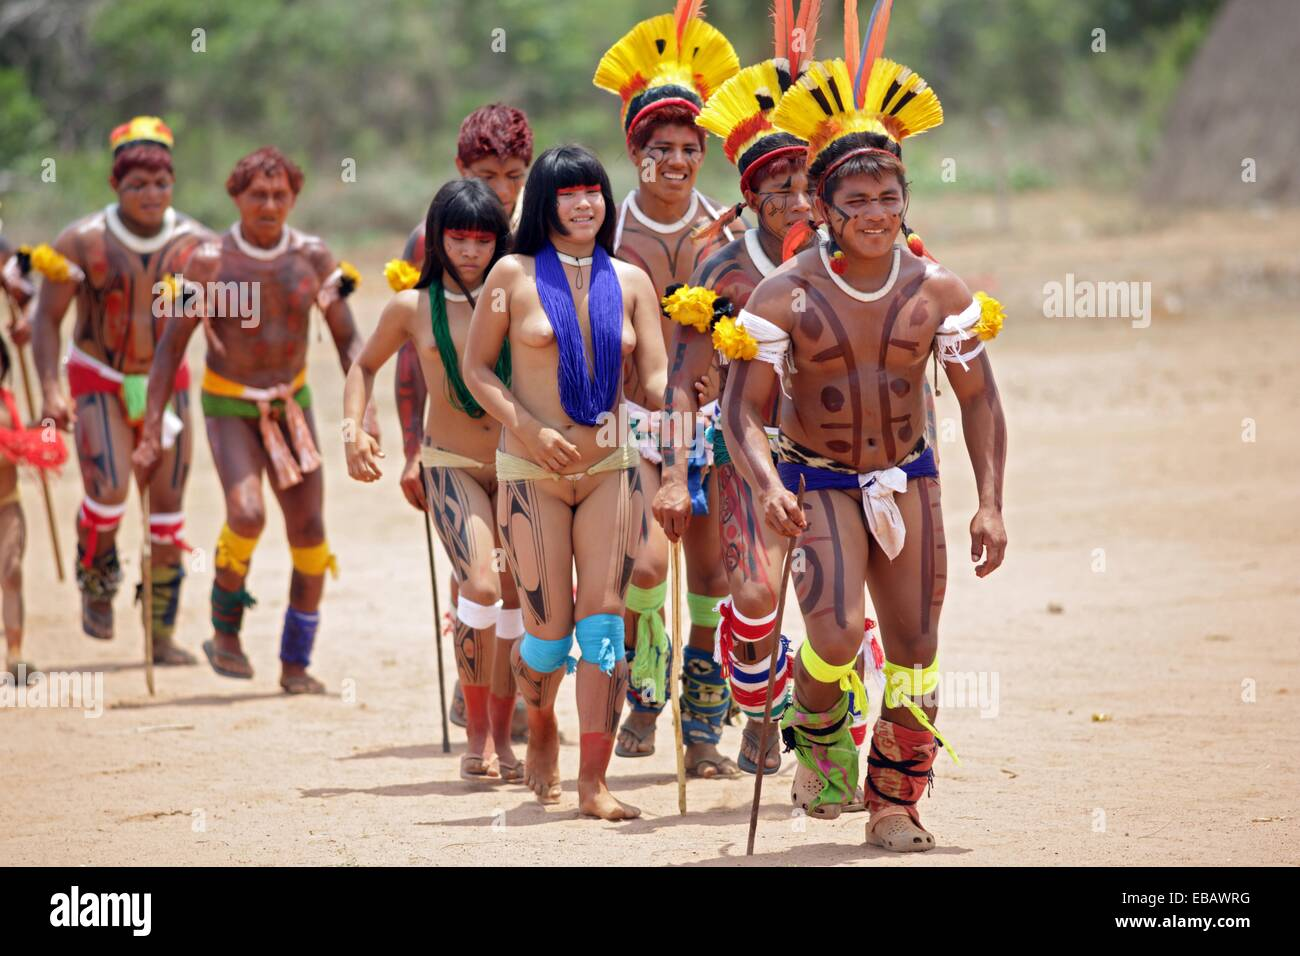 an introduction to the kalapalo indians of central brazil in south america